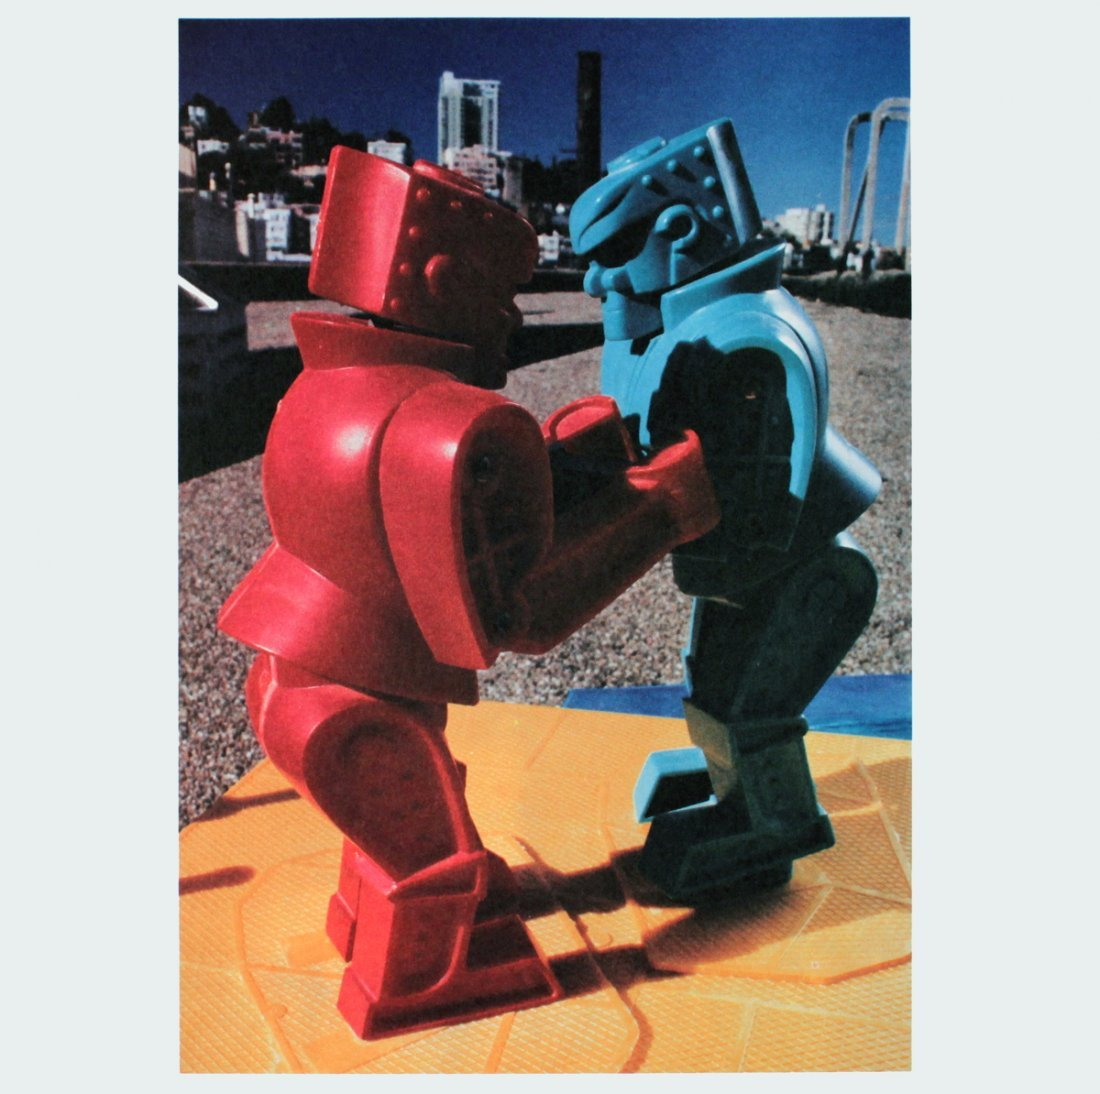 1006: Signed 1986 Adams From Art Sounds Print